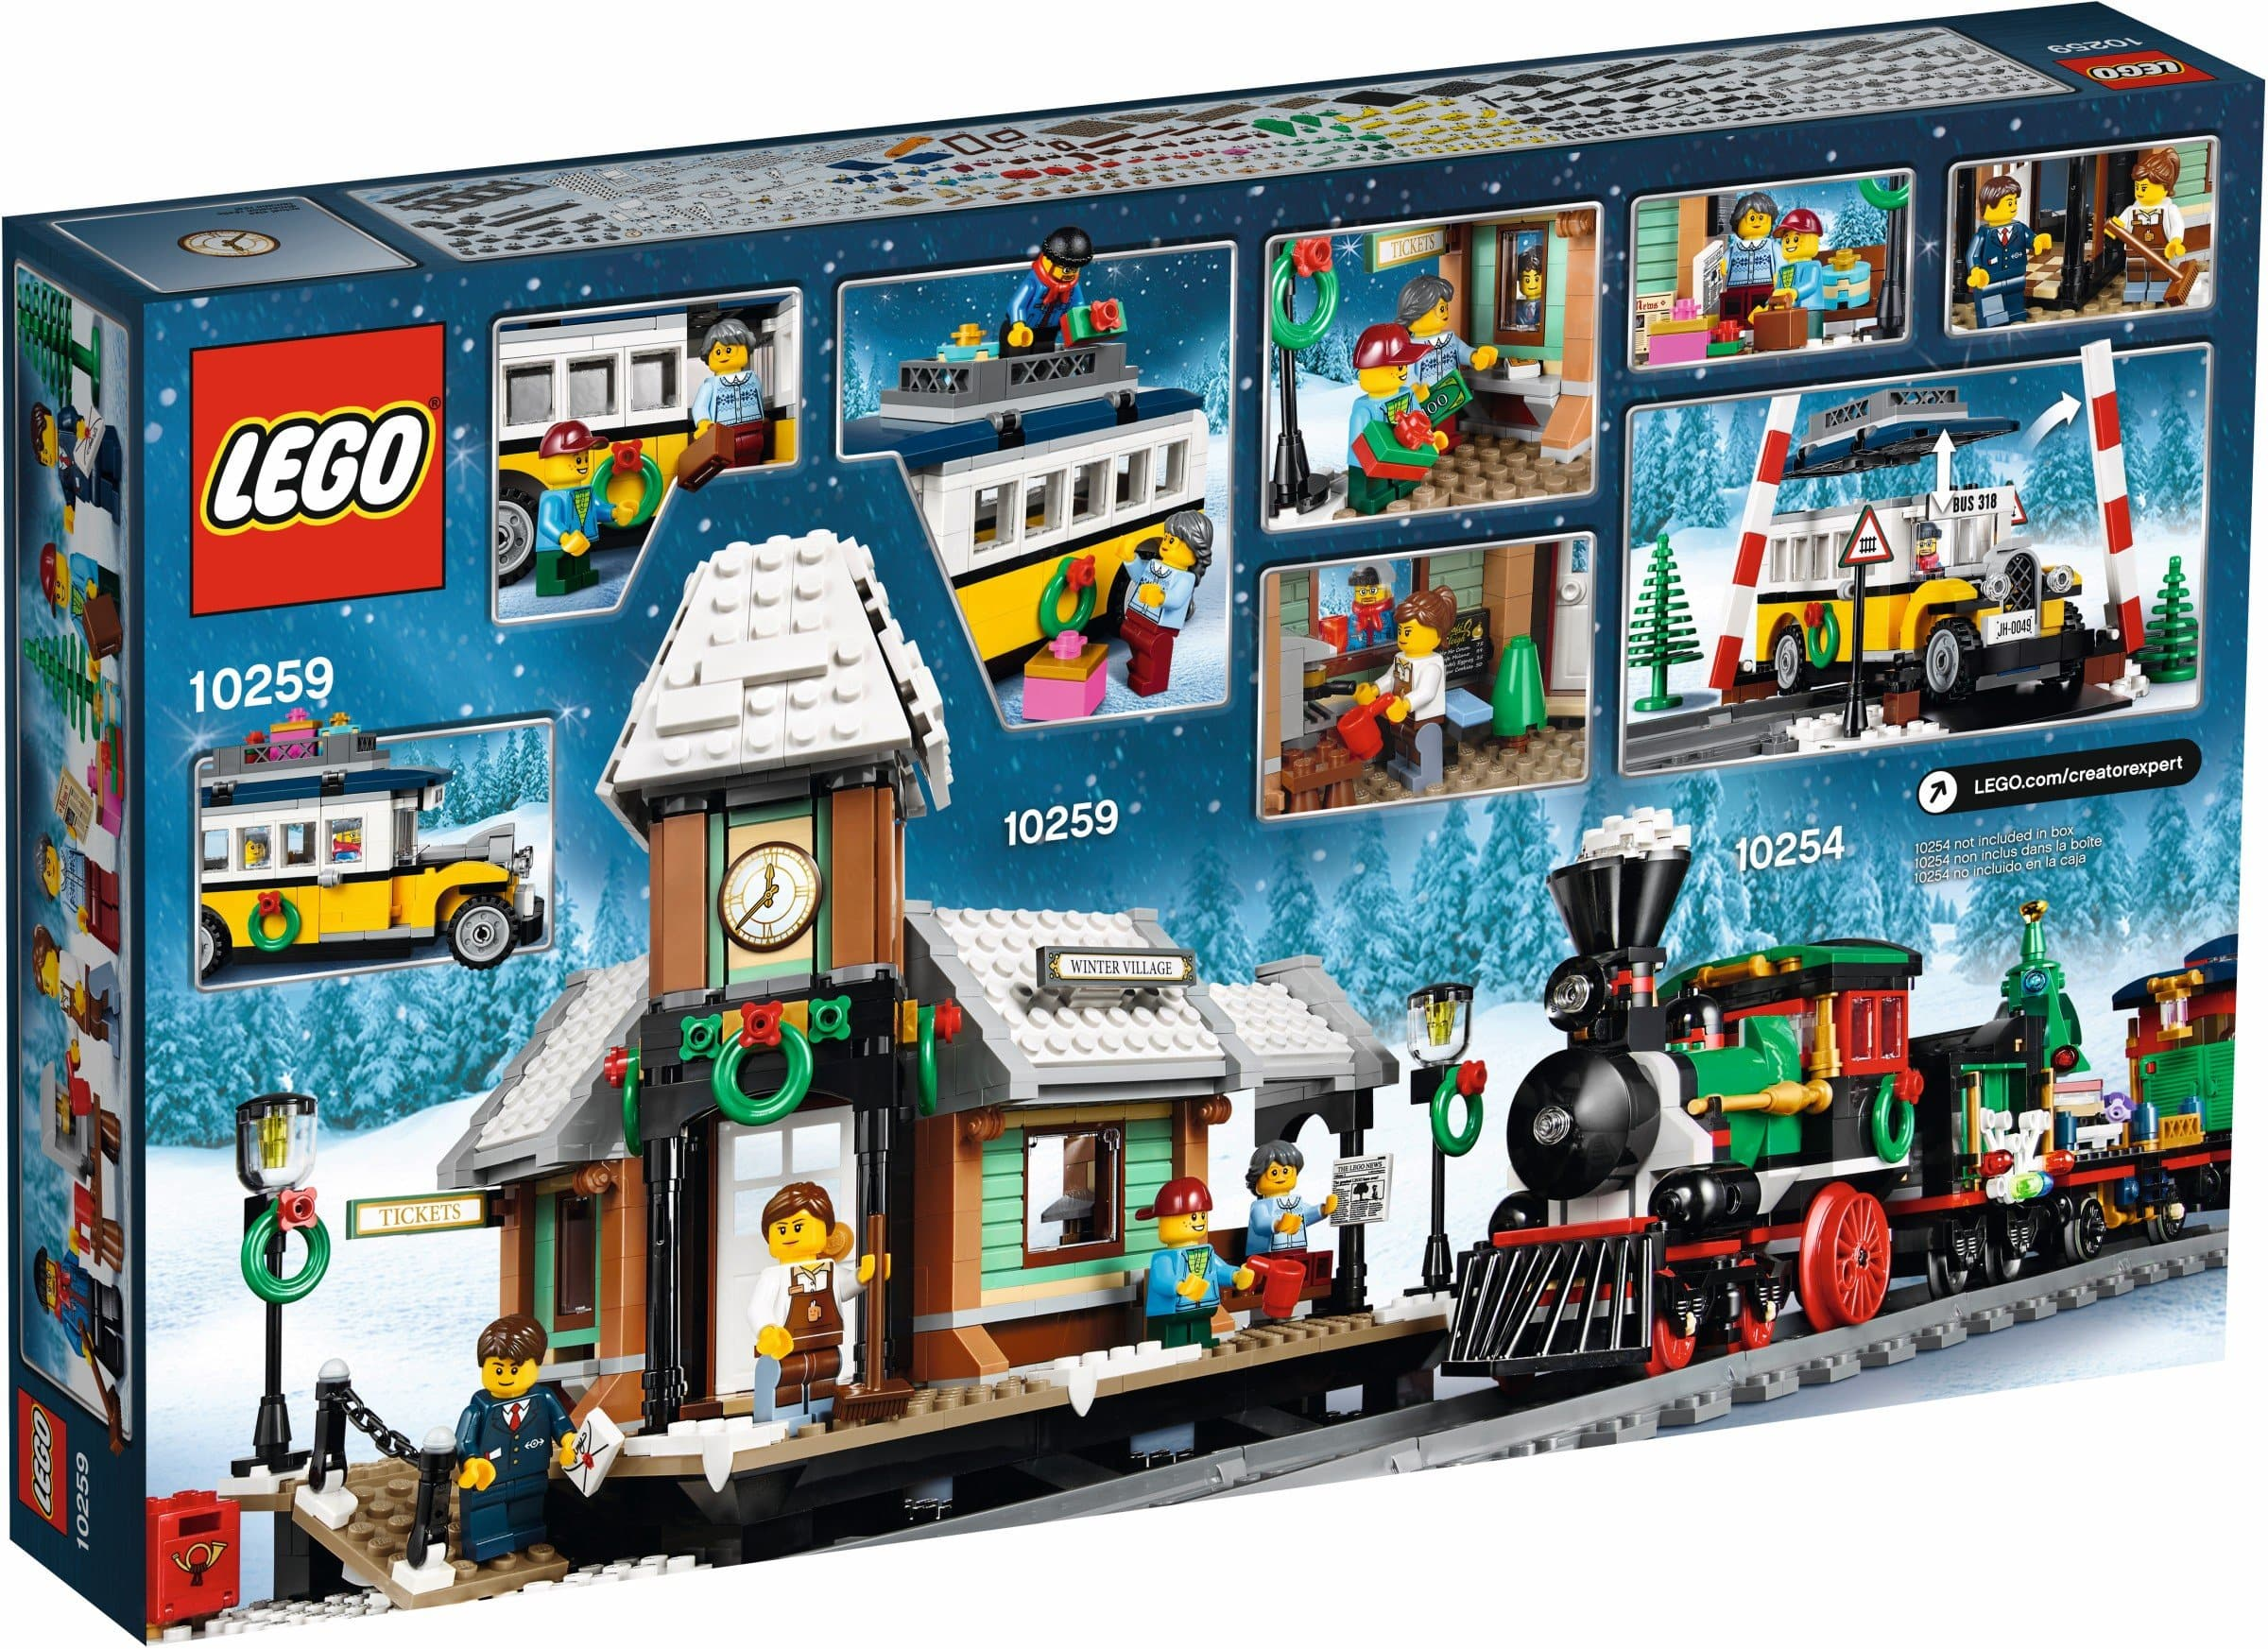 לגו 10259 Lego - תחנת רכבת חורפית freeshipping - TheBrick.co.il